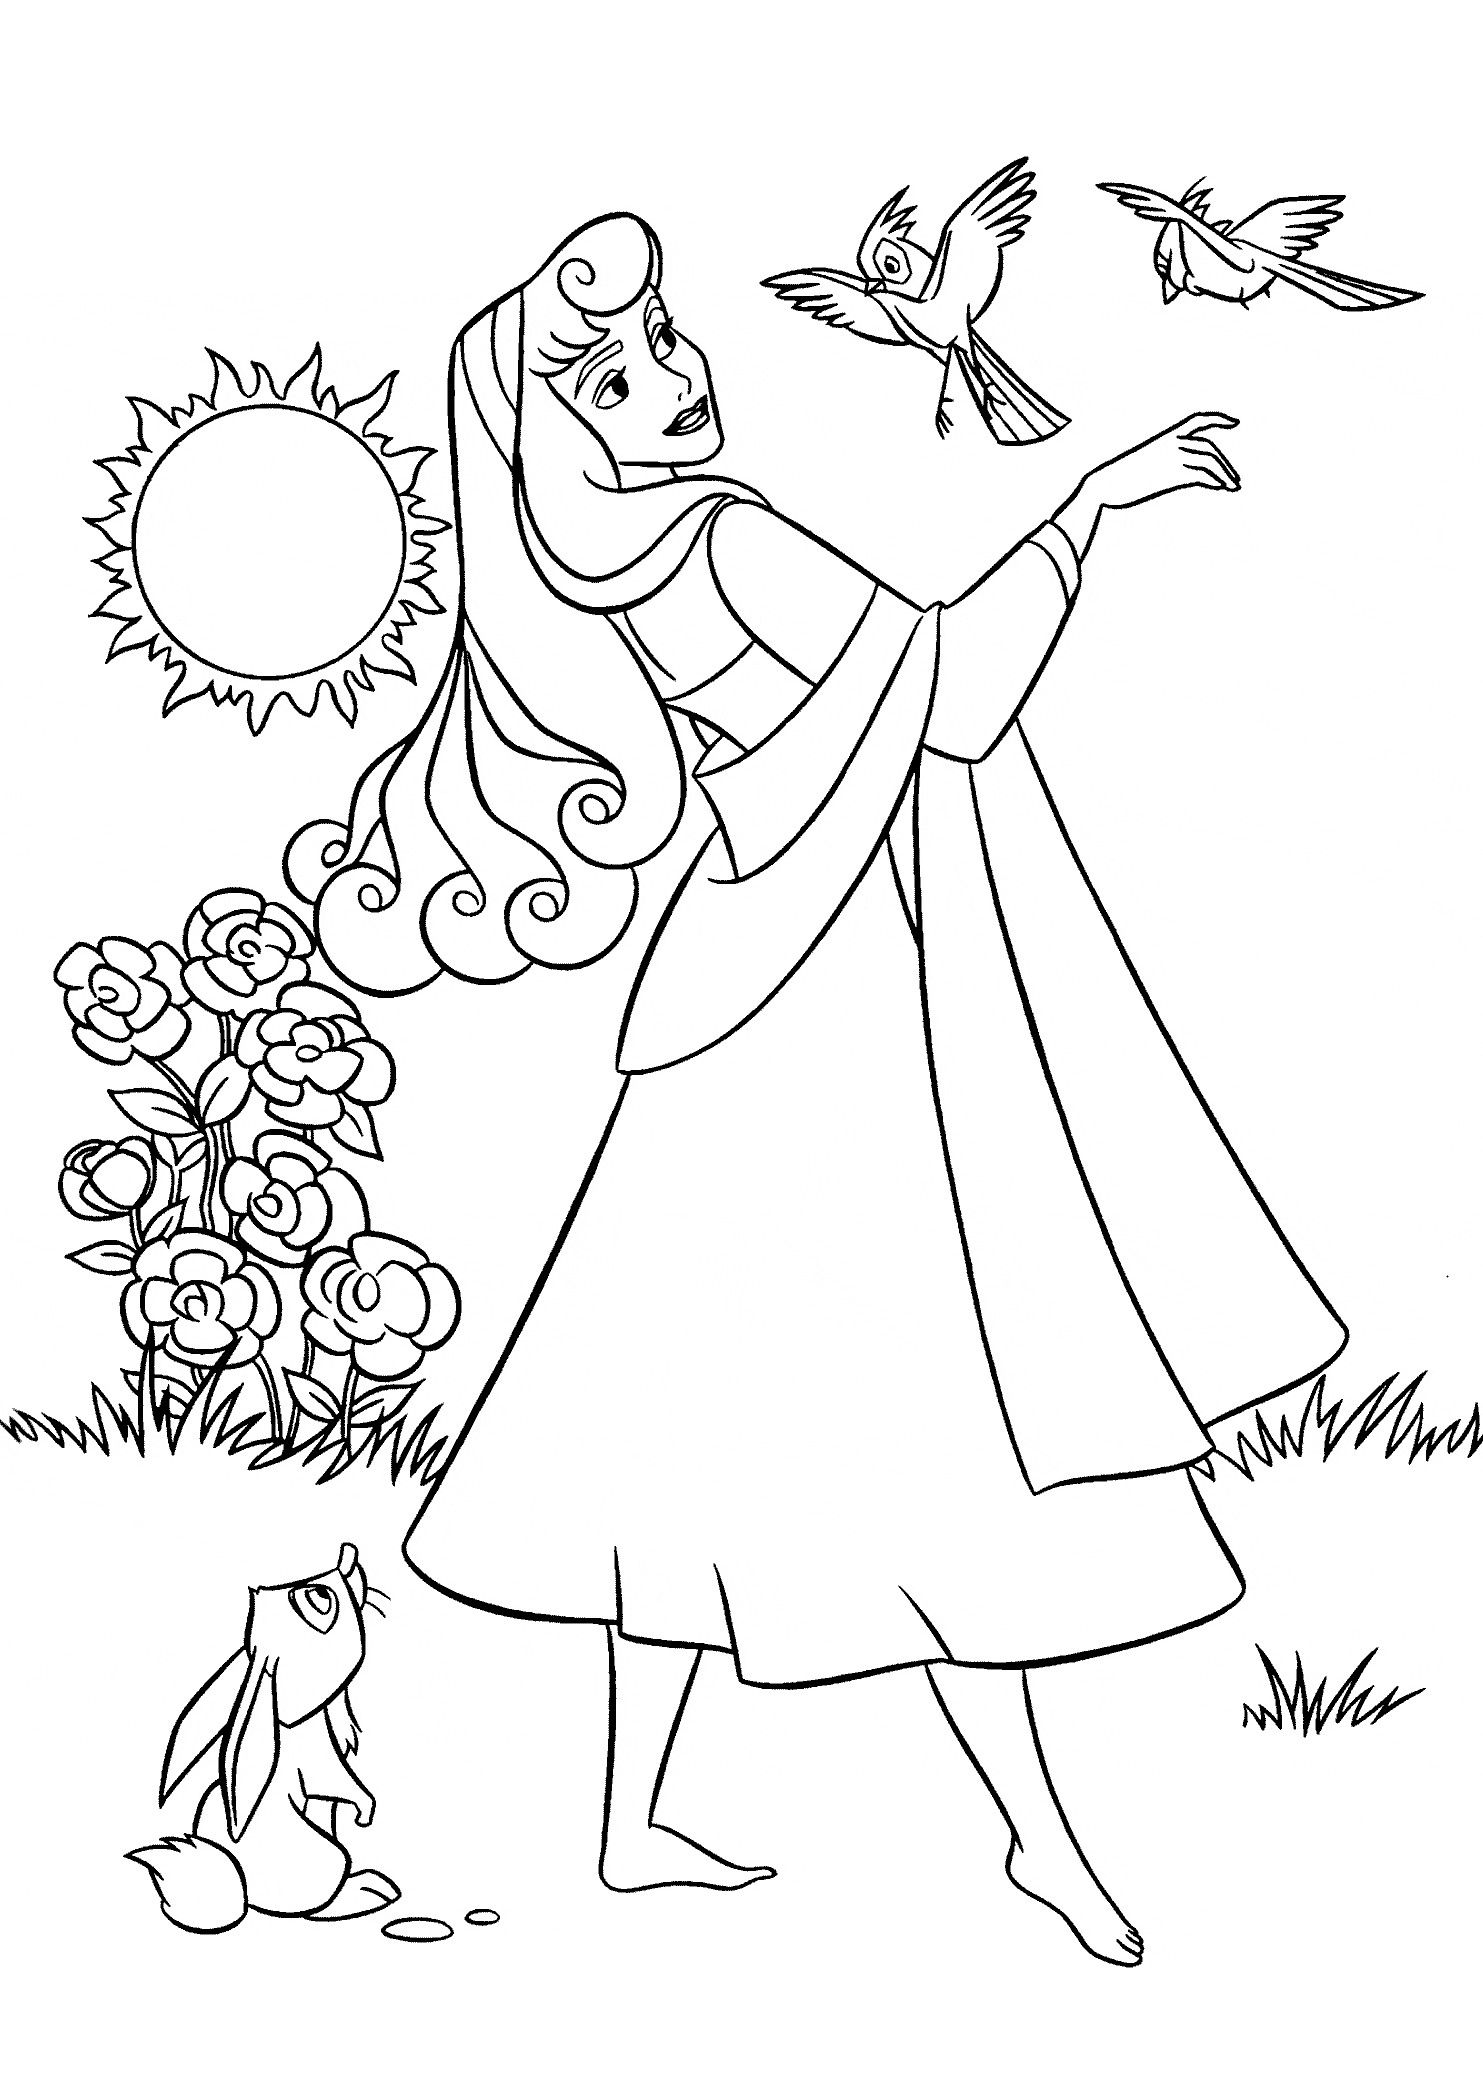 Disney Princess Coloring Pages Aurora From The Thousand Images On The W Disney Princess Coloring Pages Princess Coloring Pages Sleeping Beauty Coloring Pages